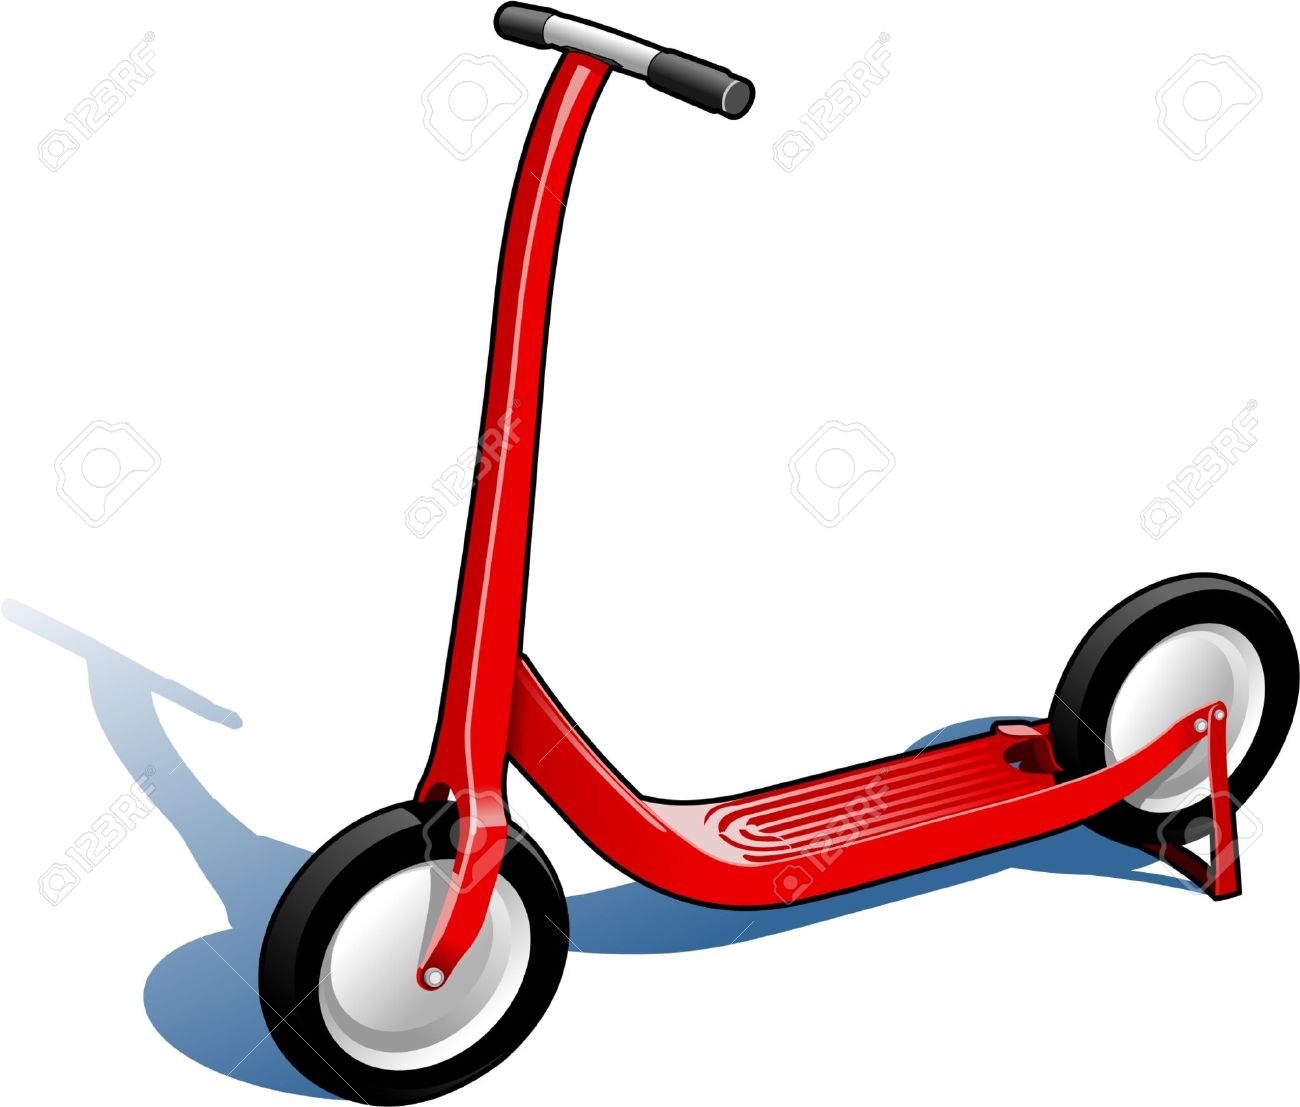 Red Scooter Royalty Free Cliparts, Vectors, And Stock Illustration.